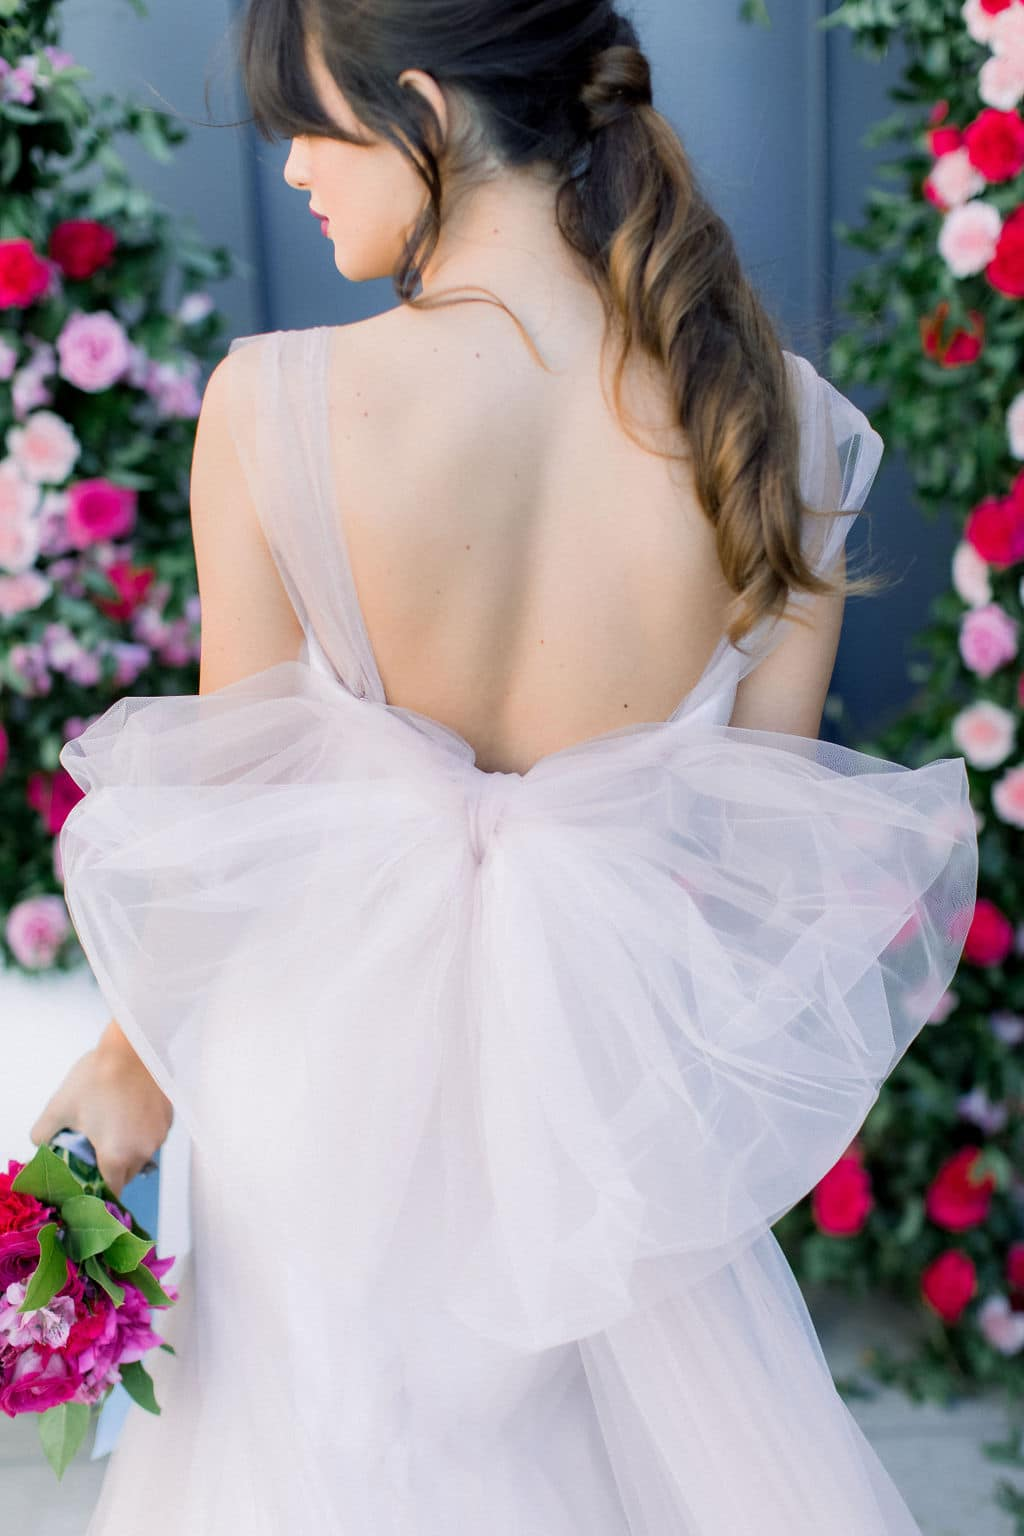 the back of the bride with straps and heart shaped fabric